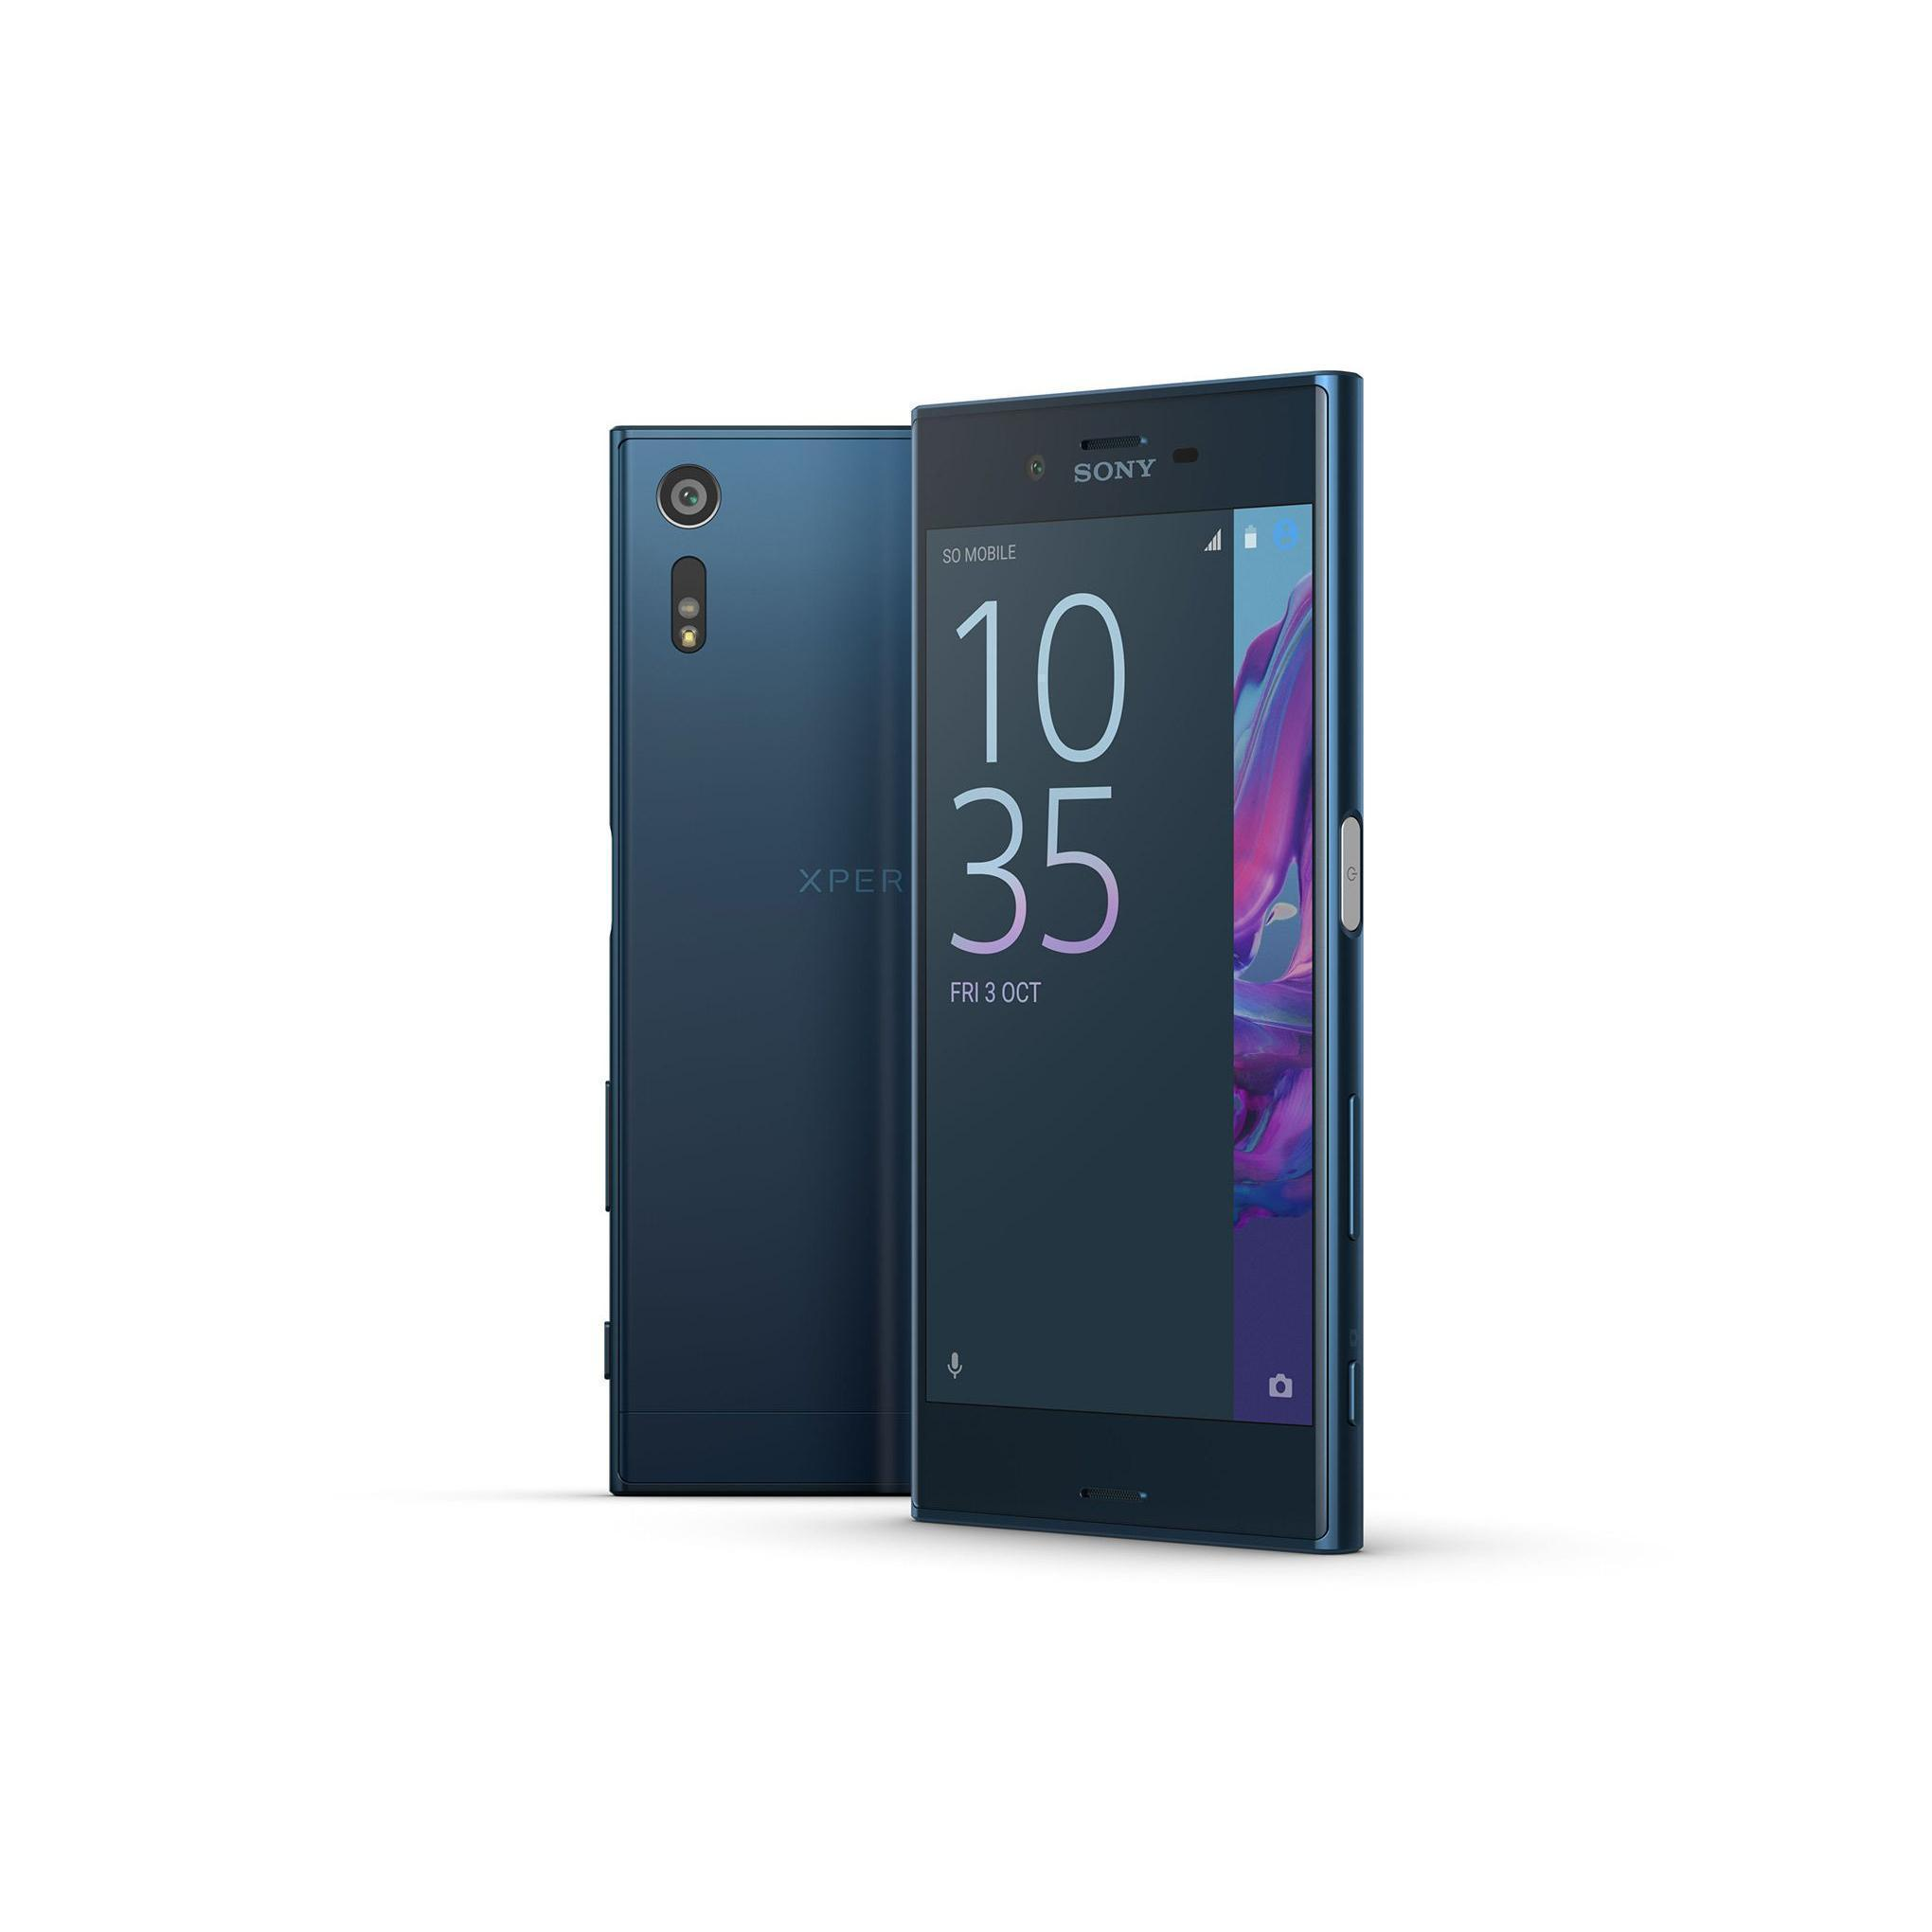 sony xperia xz 32 go bleu d bloqu reconditionn back market. Black Bedroom Furniture Sets. Home Design Ideas